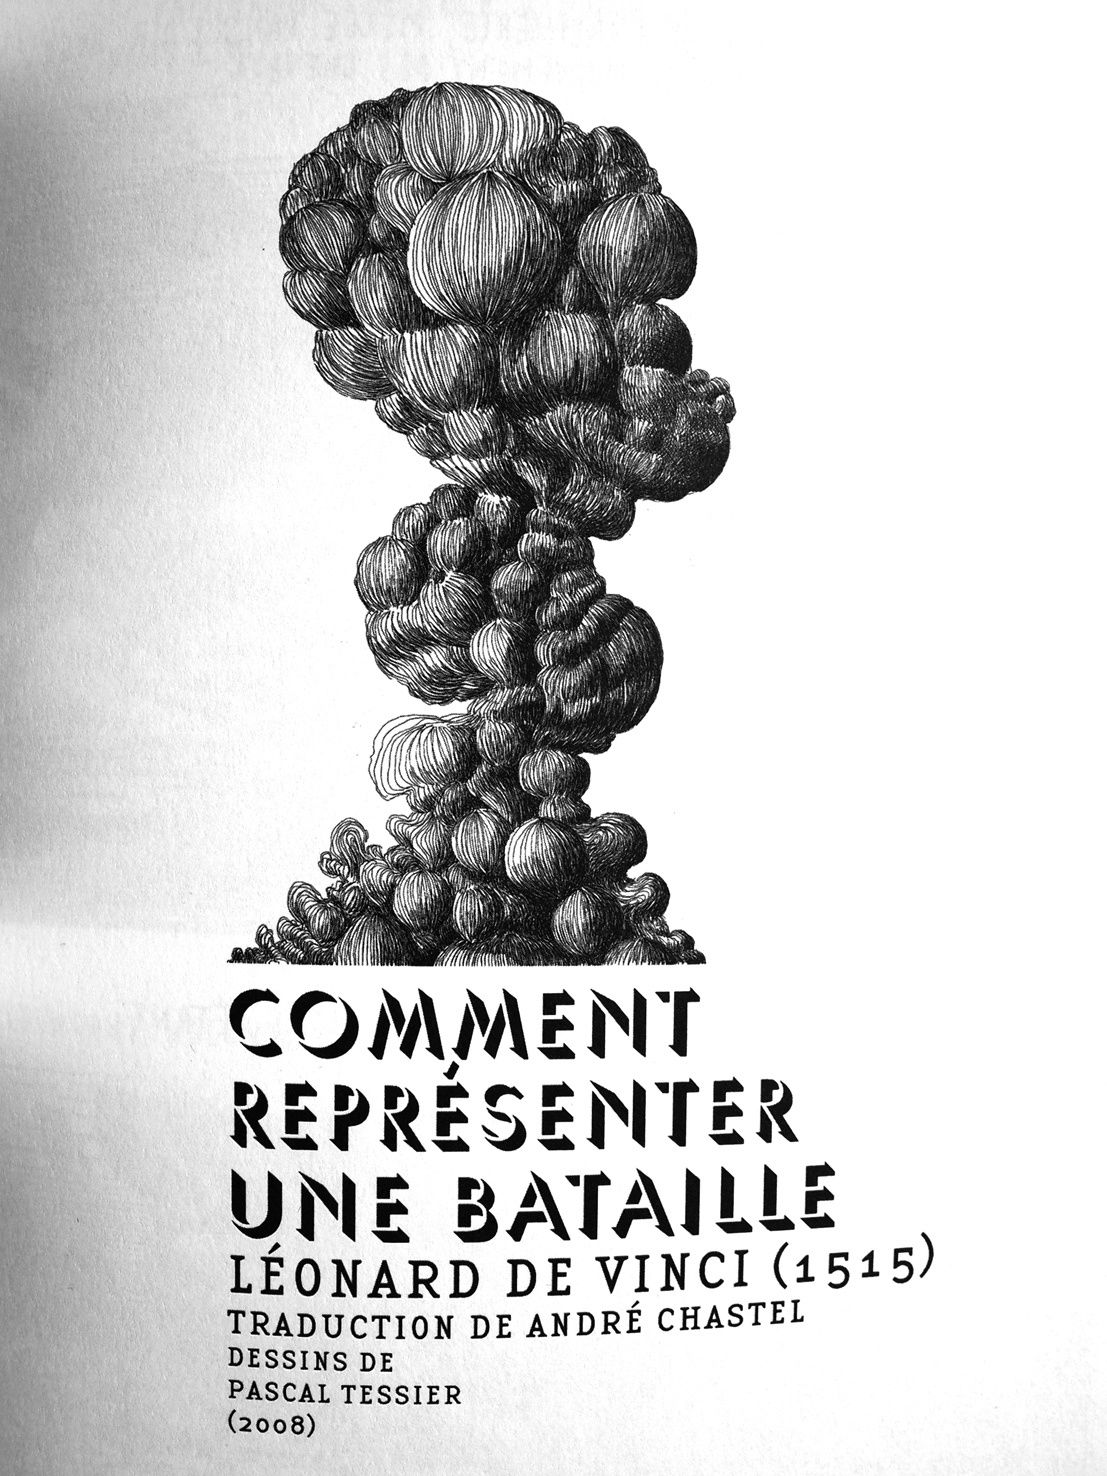 bataille-01